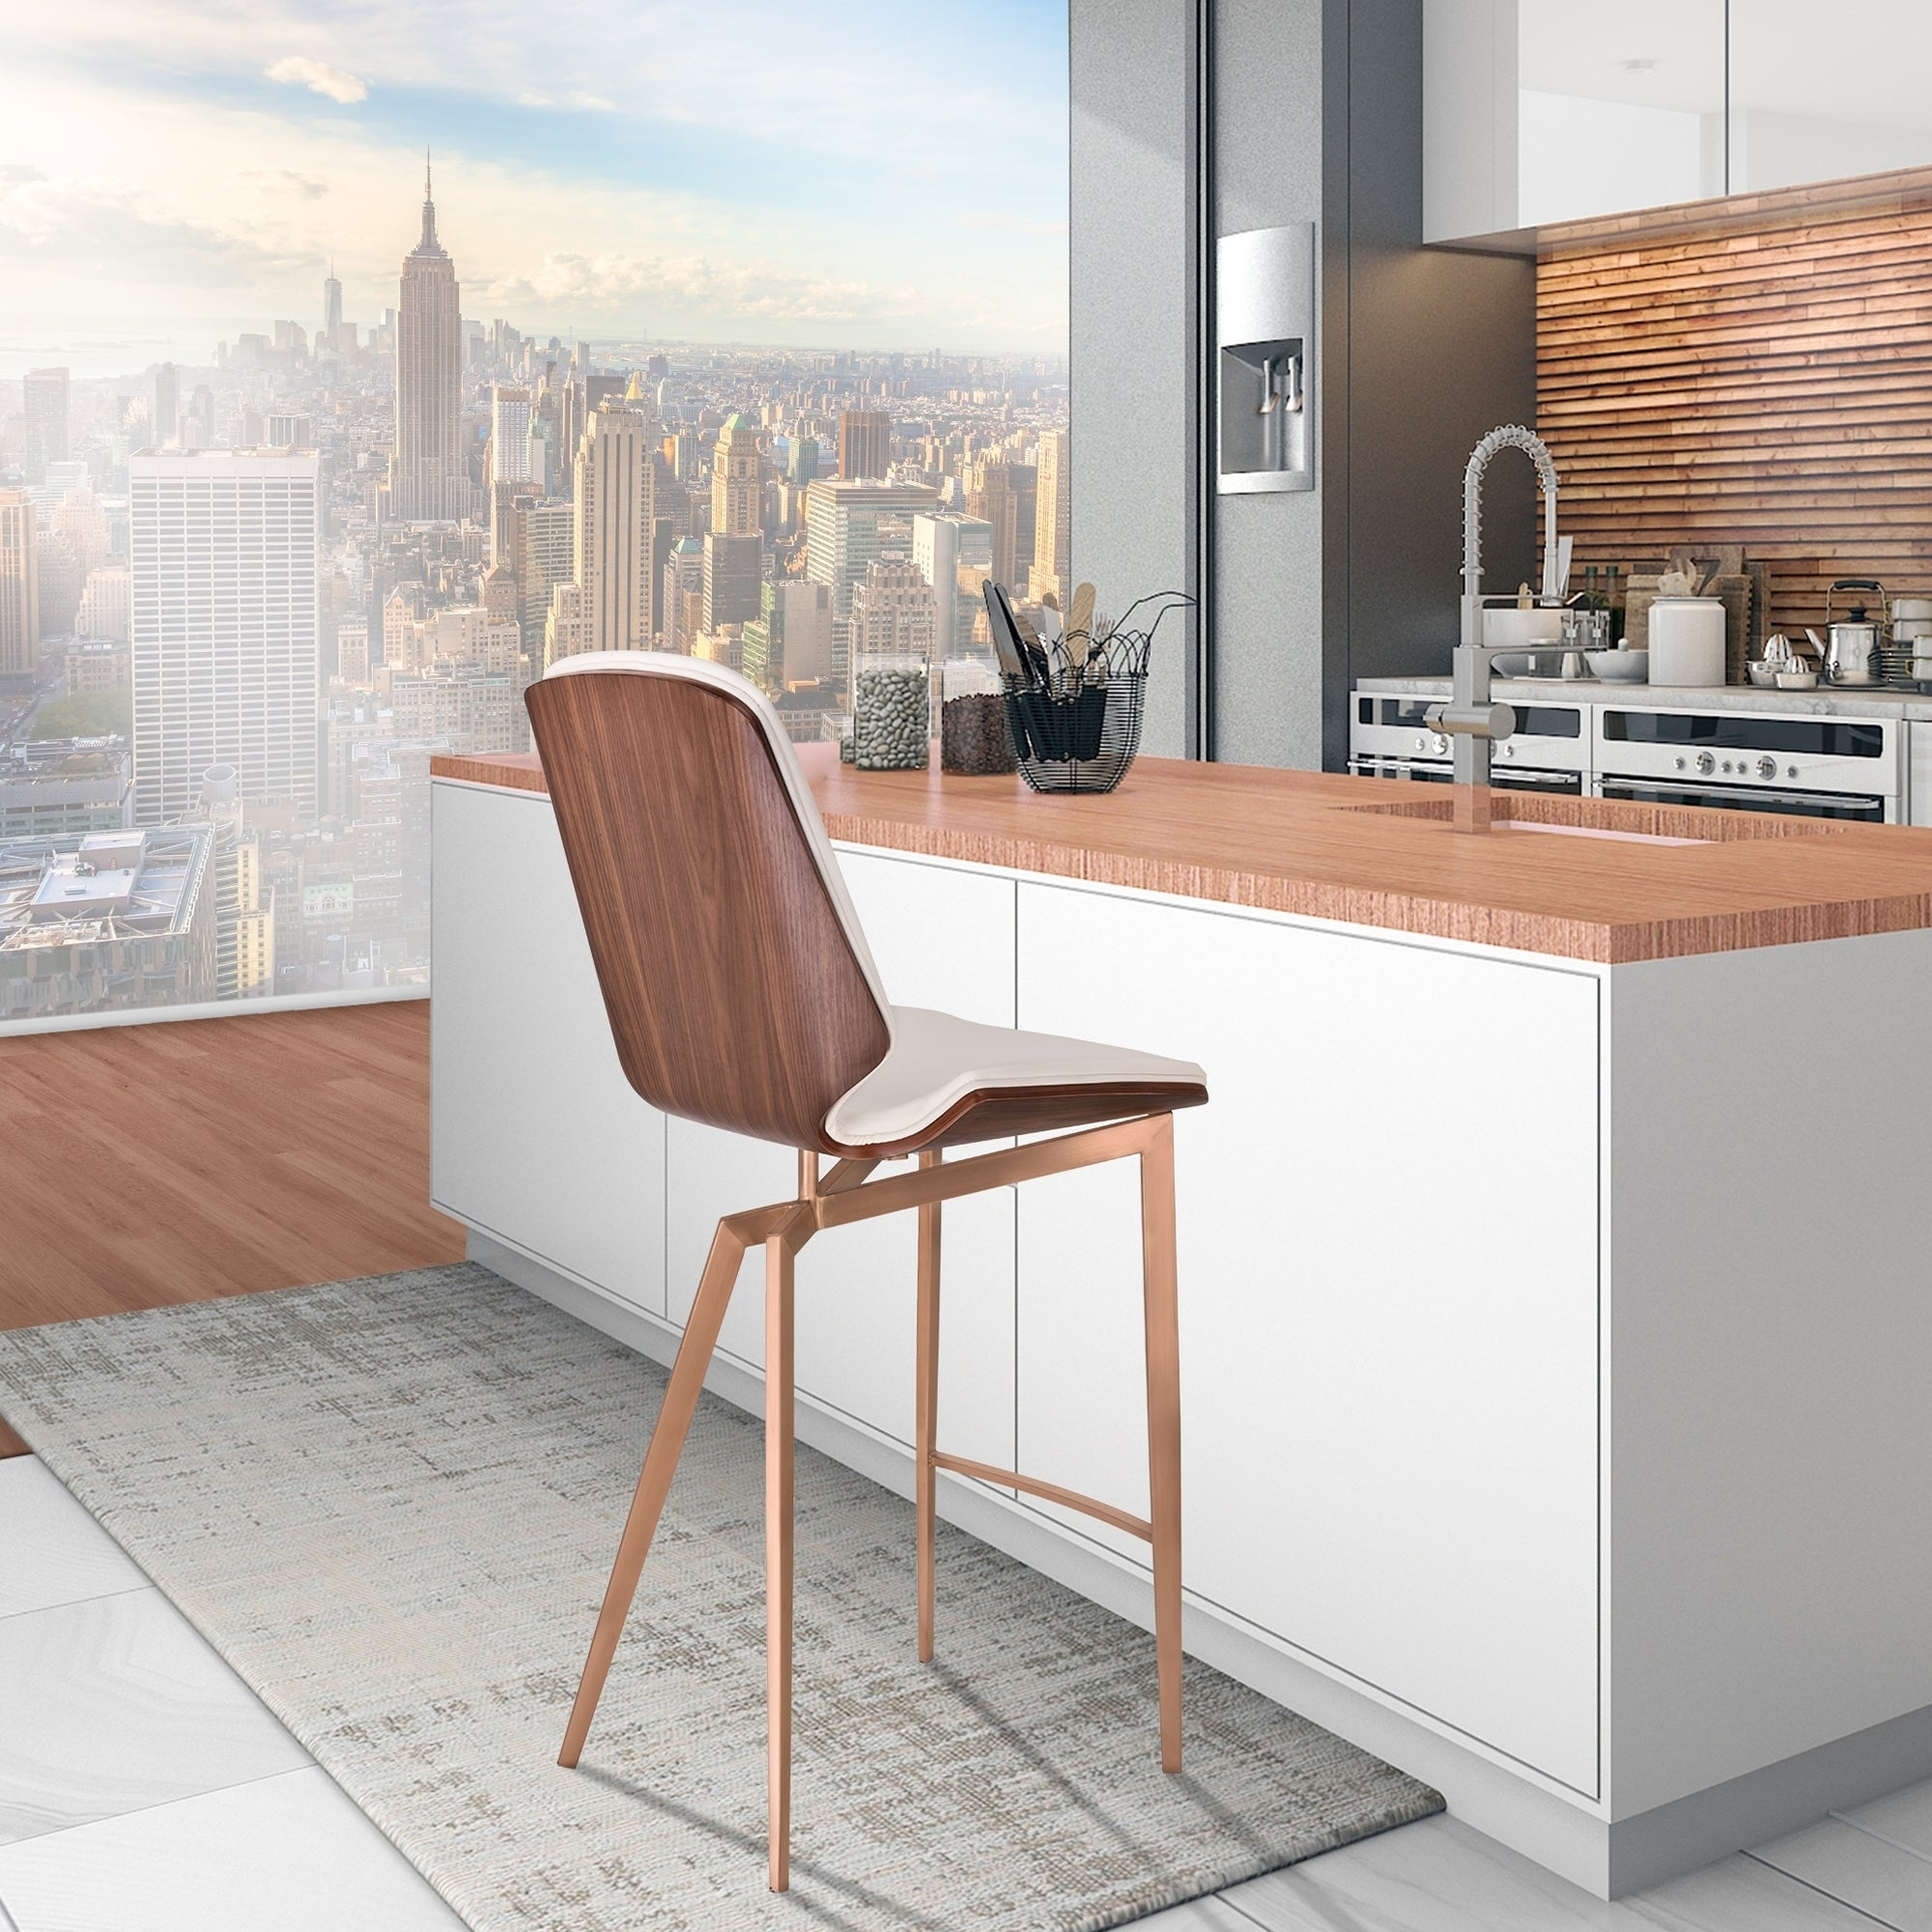 Karen Copper Brushed Stainless Steel 26-inch Counter-height Contemporary Bar Stool with White Faux Leather and Walnut Back